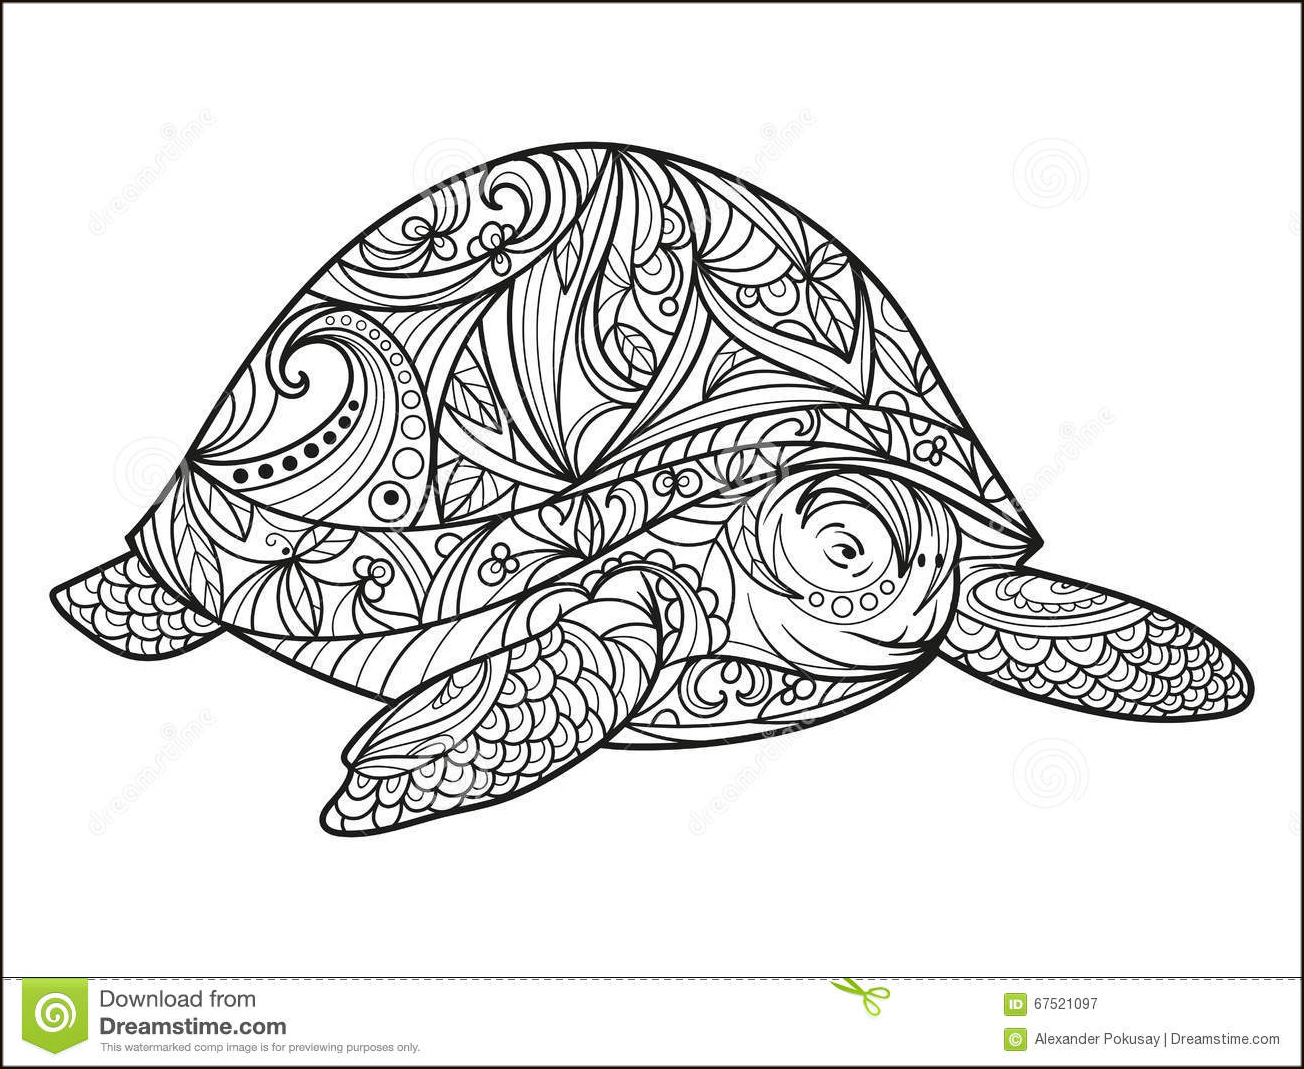 Coloring for adults, Coloring Antistress, тварини, travel, sophisticated coloring antistress,  животные, turtleanimals